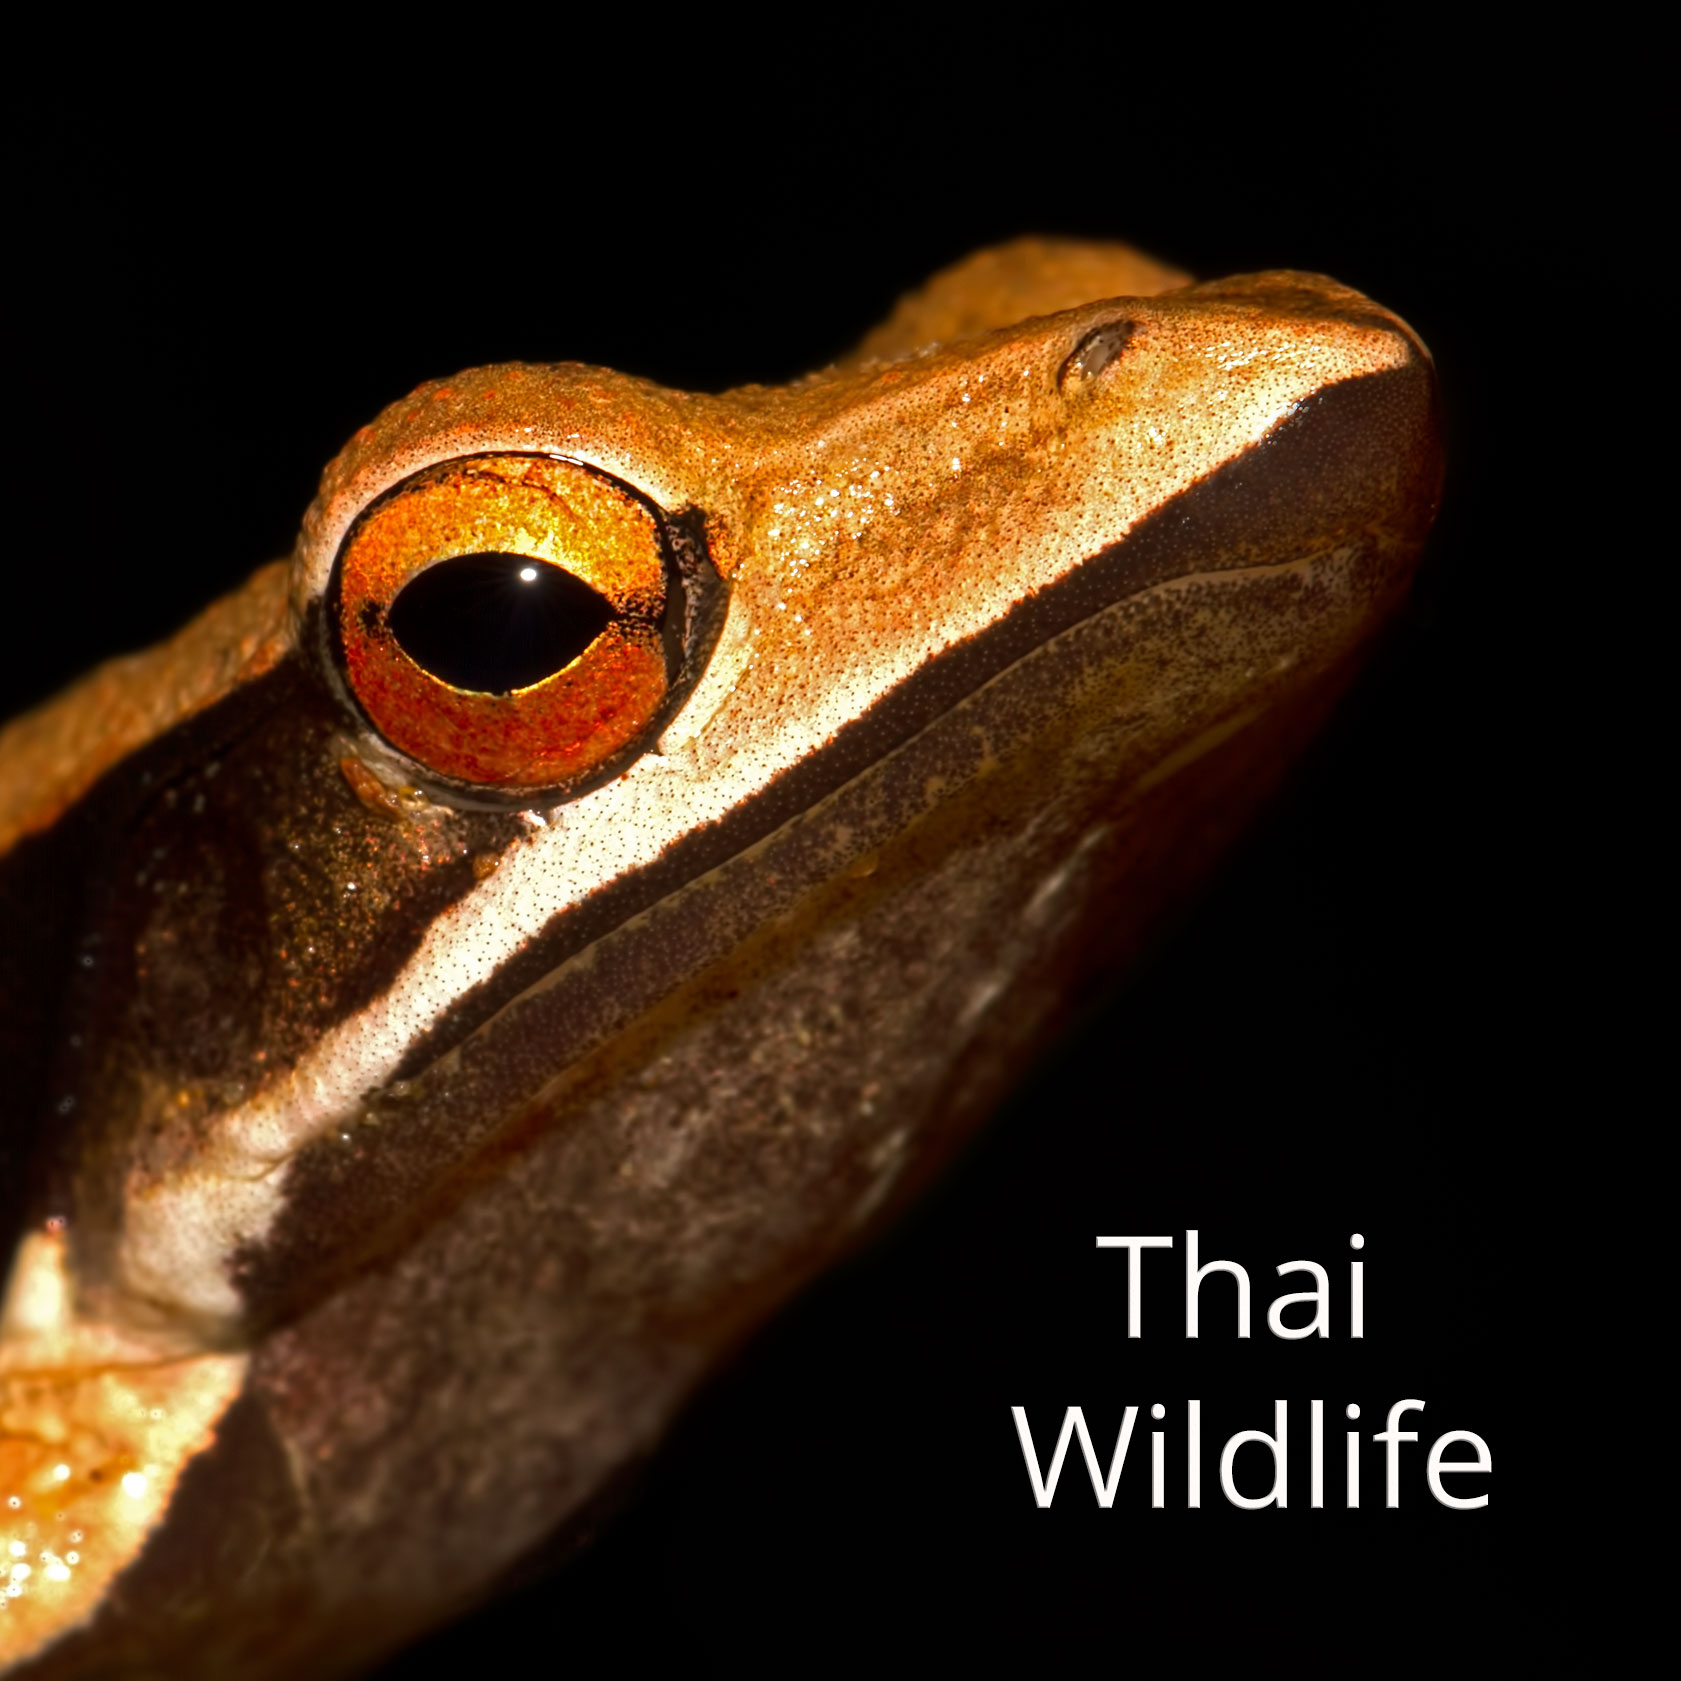 Thai wildlife gallery (image: point-nosed frog, Clinotarsus alticola)